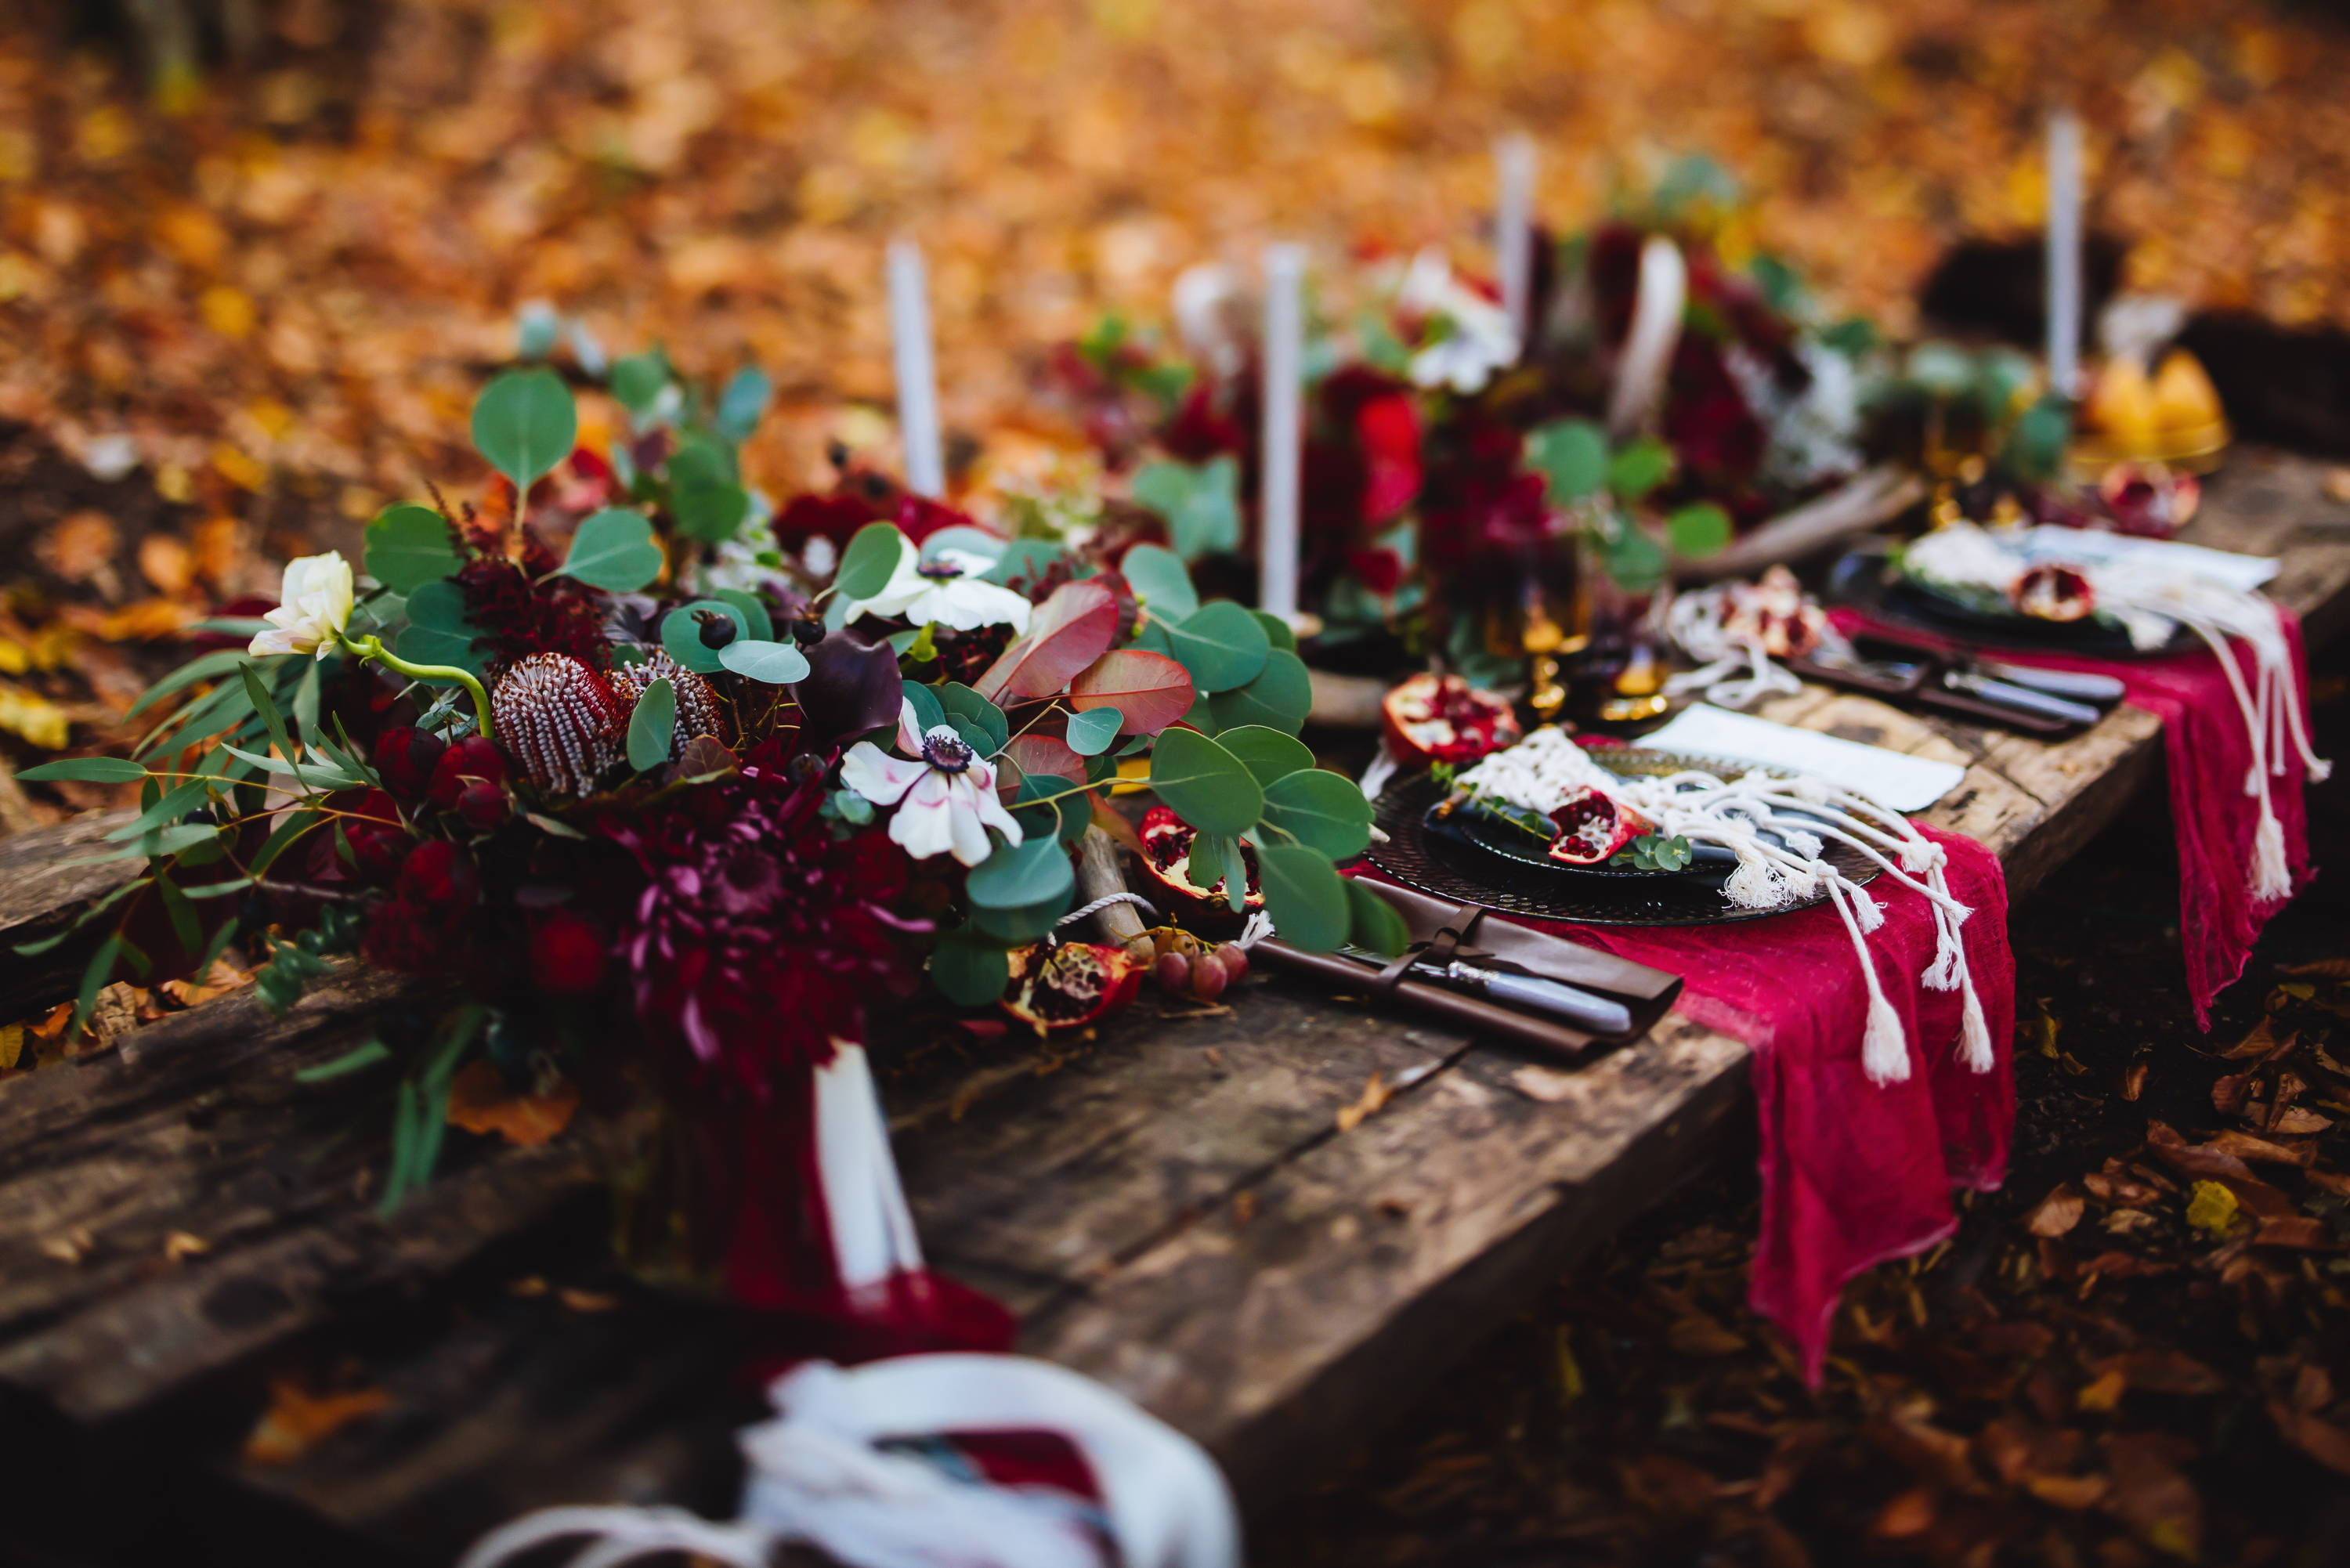 Tablescape Ideas for an outdoor dinner party